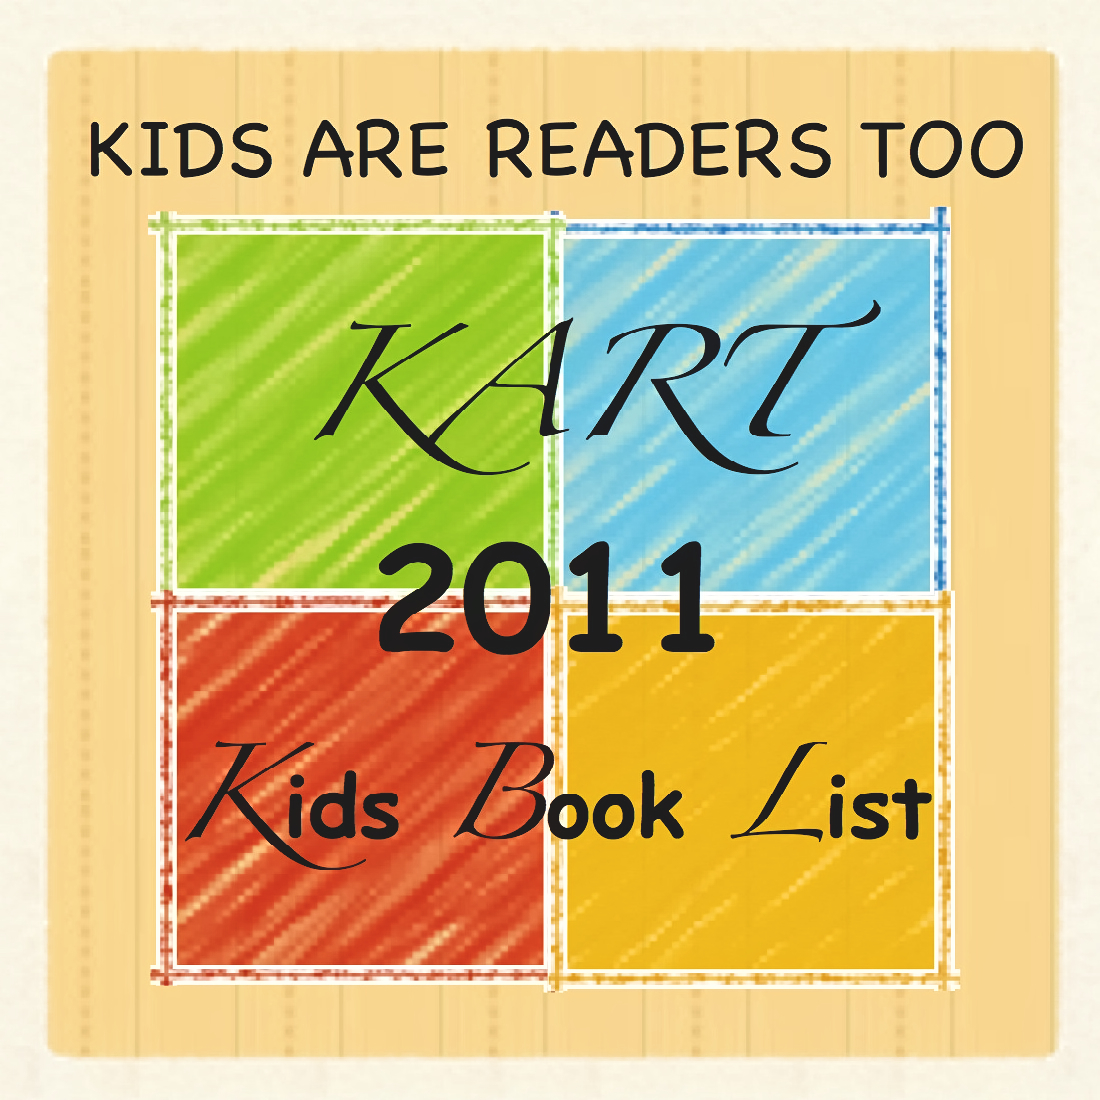 2011_Kart_Kids_Book_List_Web_Badge.jpg